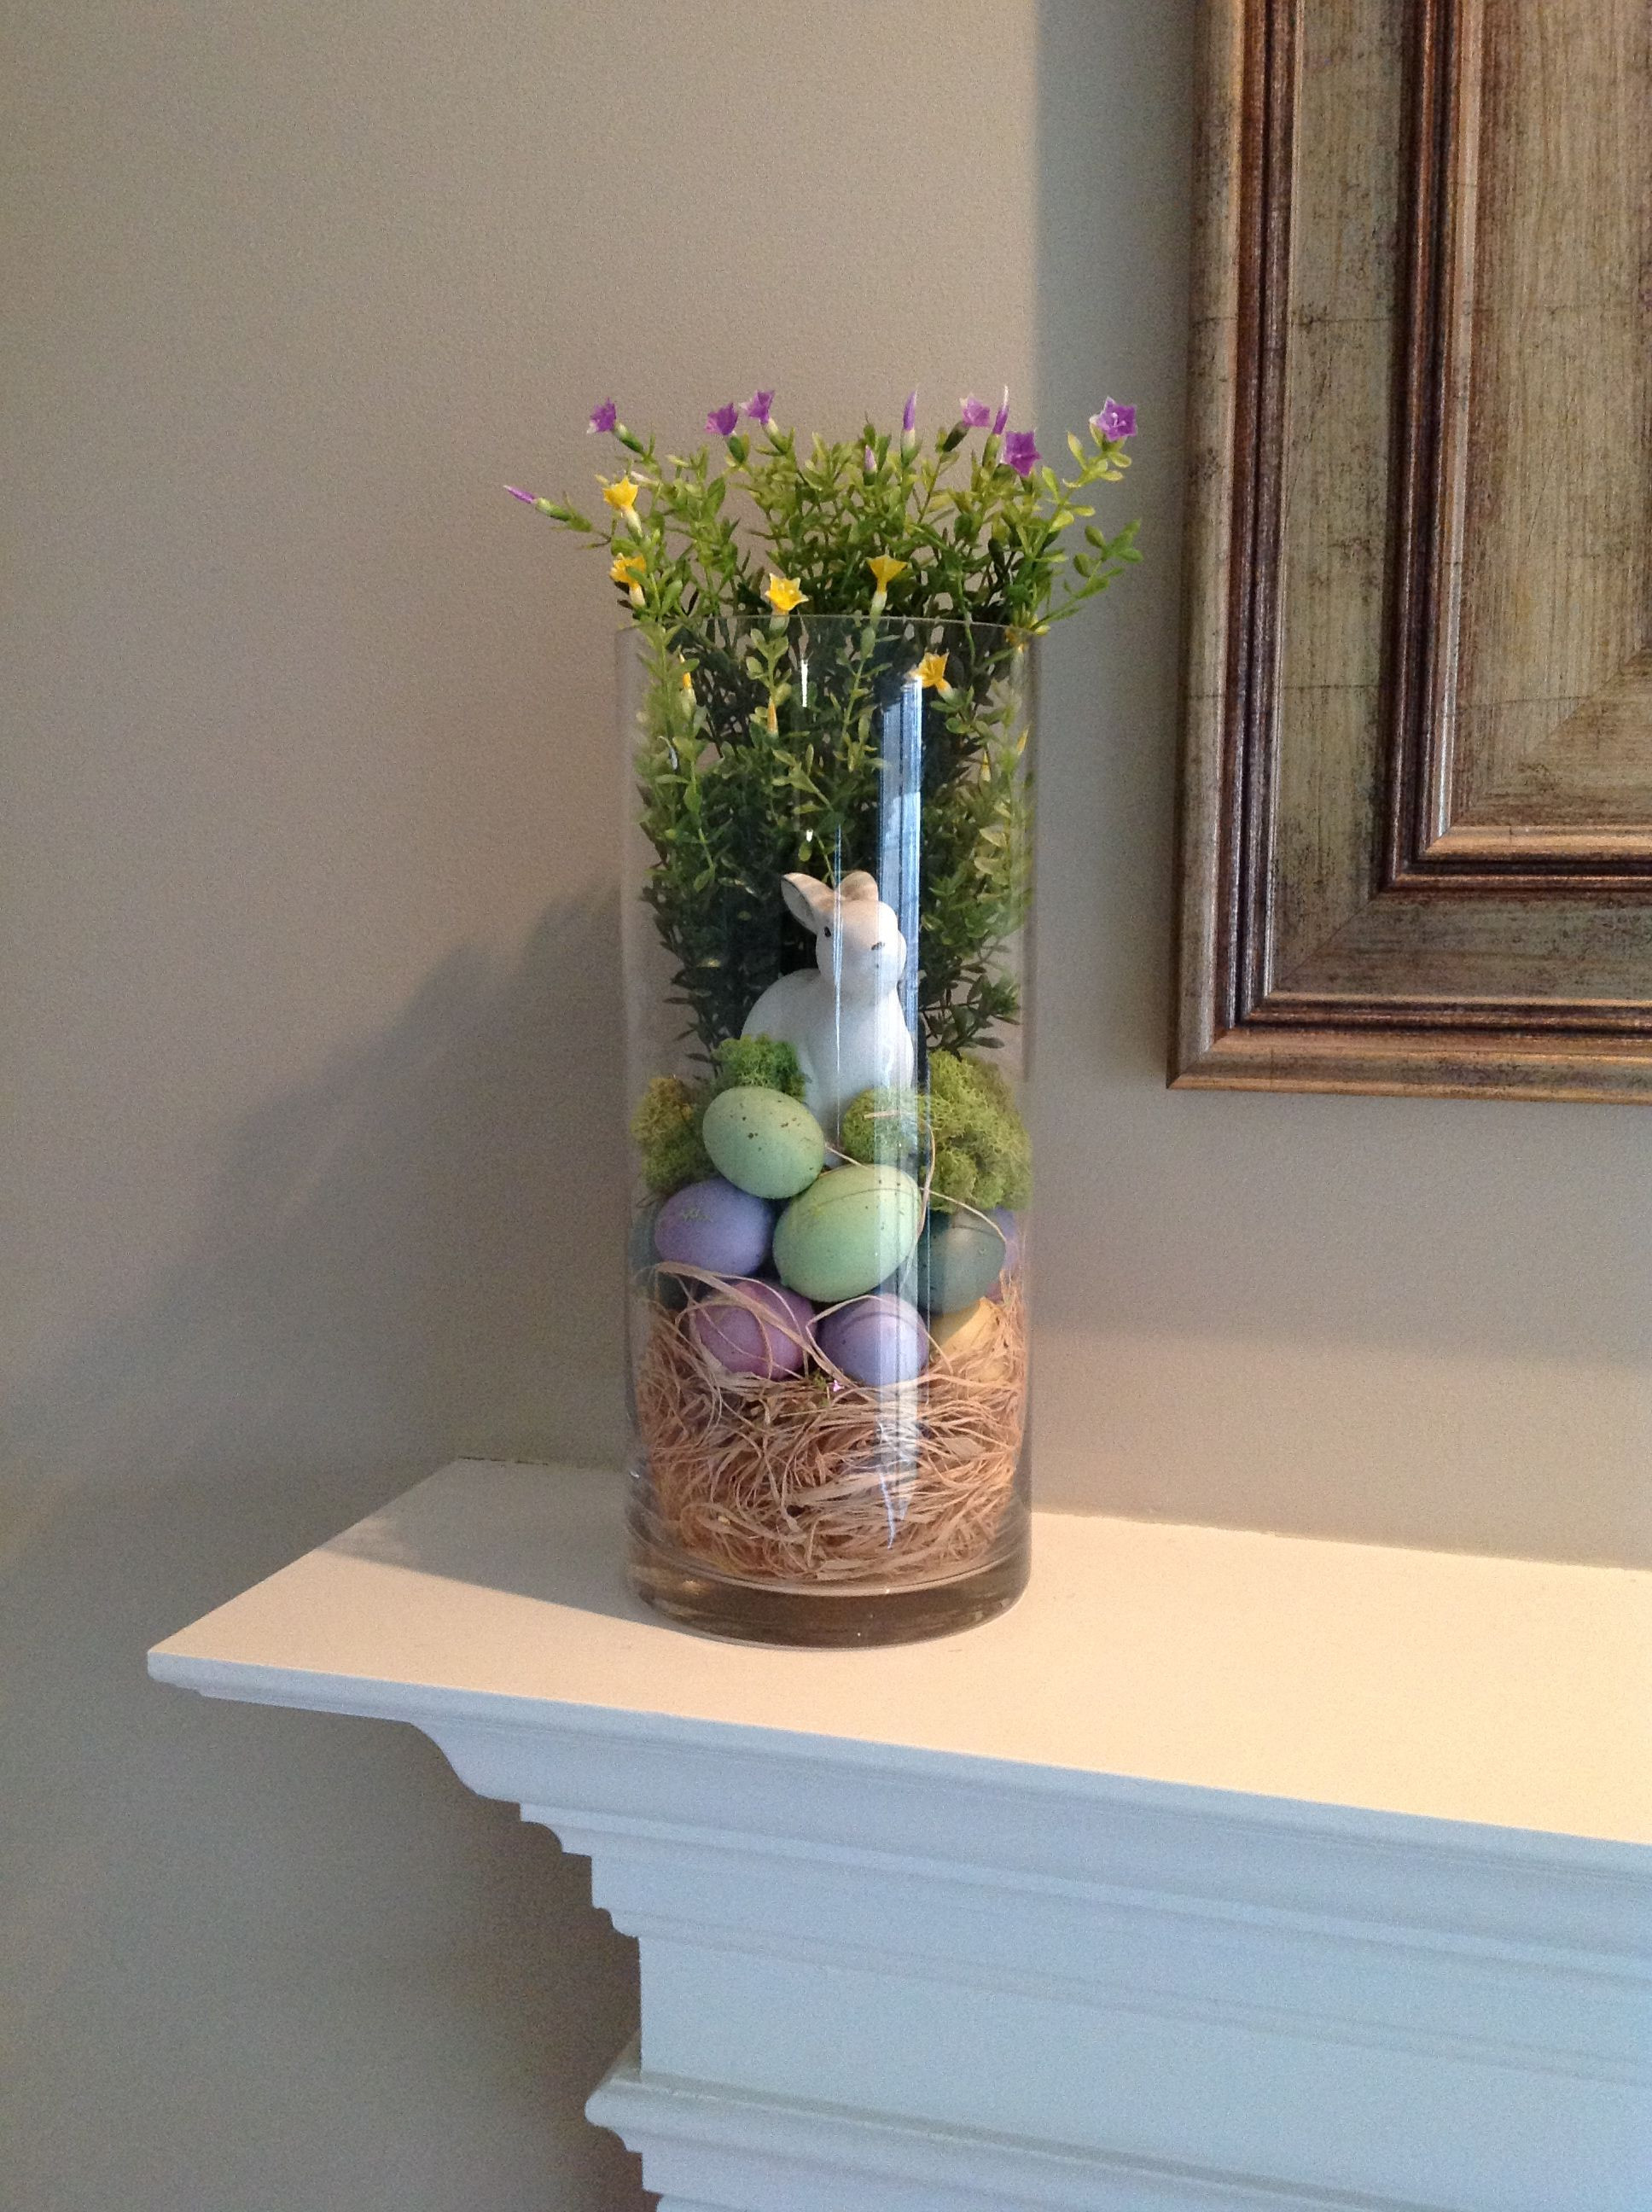 Gold Vase Filler Rocks Of Hurricane Glass Vase Filler for Spring and Easter On the Mantel Pertaining to Hurricane Glass Vase Filler for Spring and Easter On the Mantel Lori Lubker Pin Easter Hurricane Rabbit